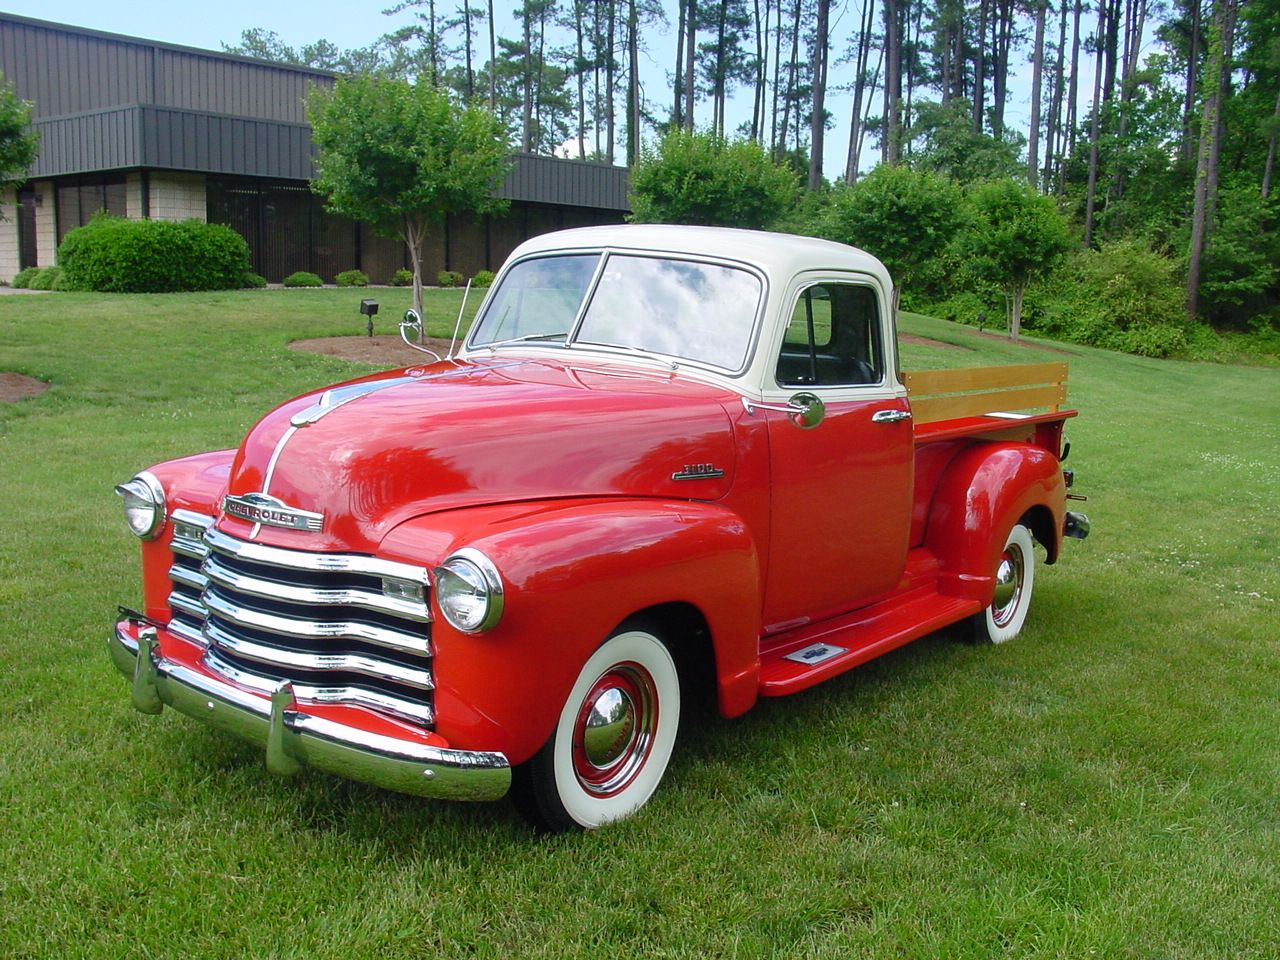 1955 chevrolet hot rod truck pictures to pin on pinterest - 1953 Chevrolet Pickup